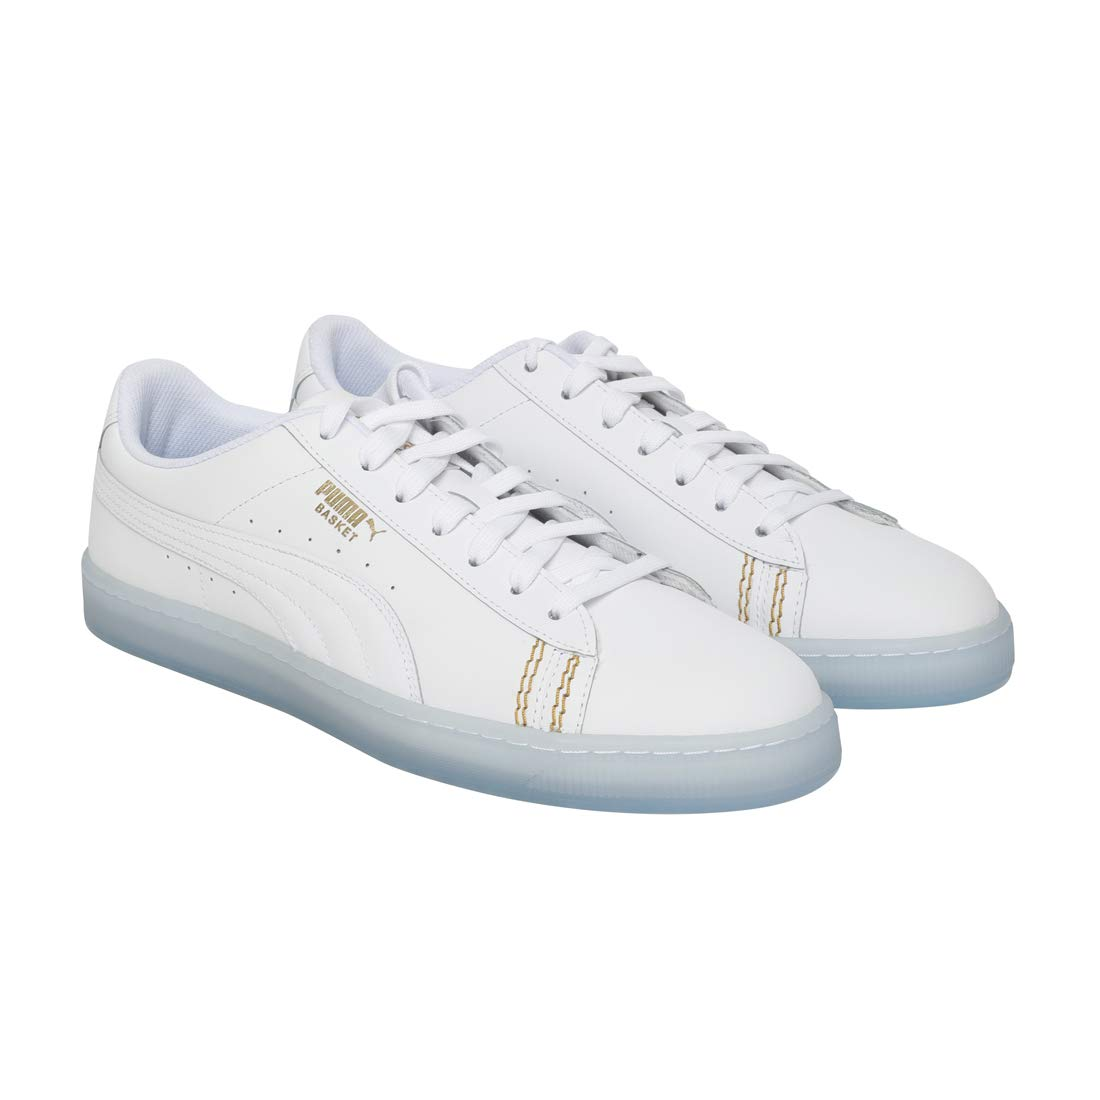 timeless design 91c4d 29dd3 Puma Unisex's Basket Classic One8 Sneakers